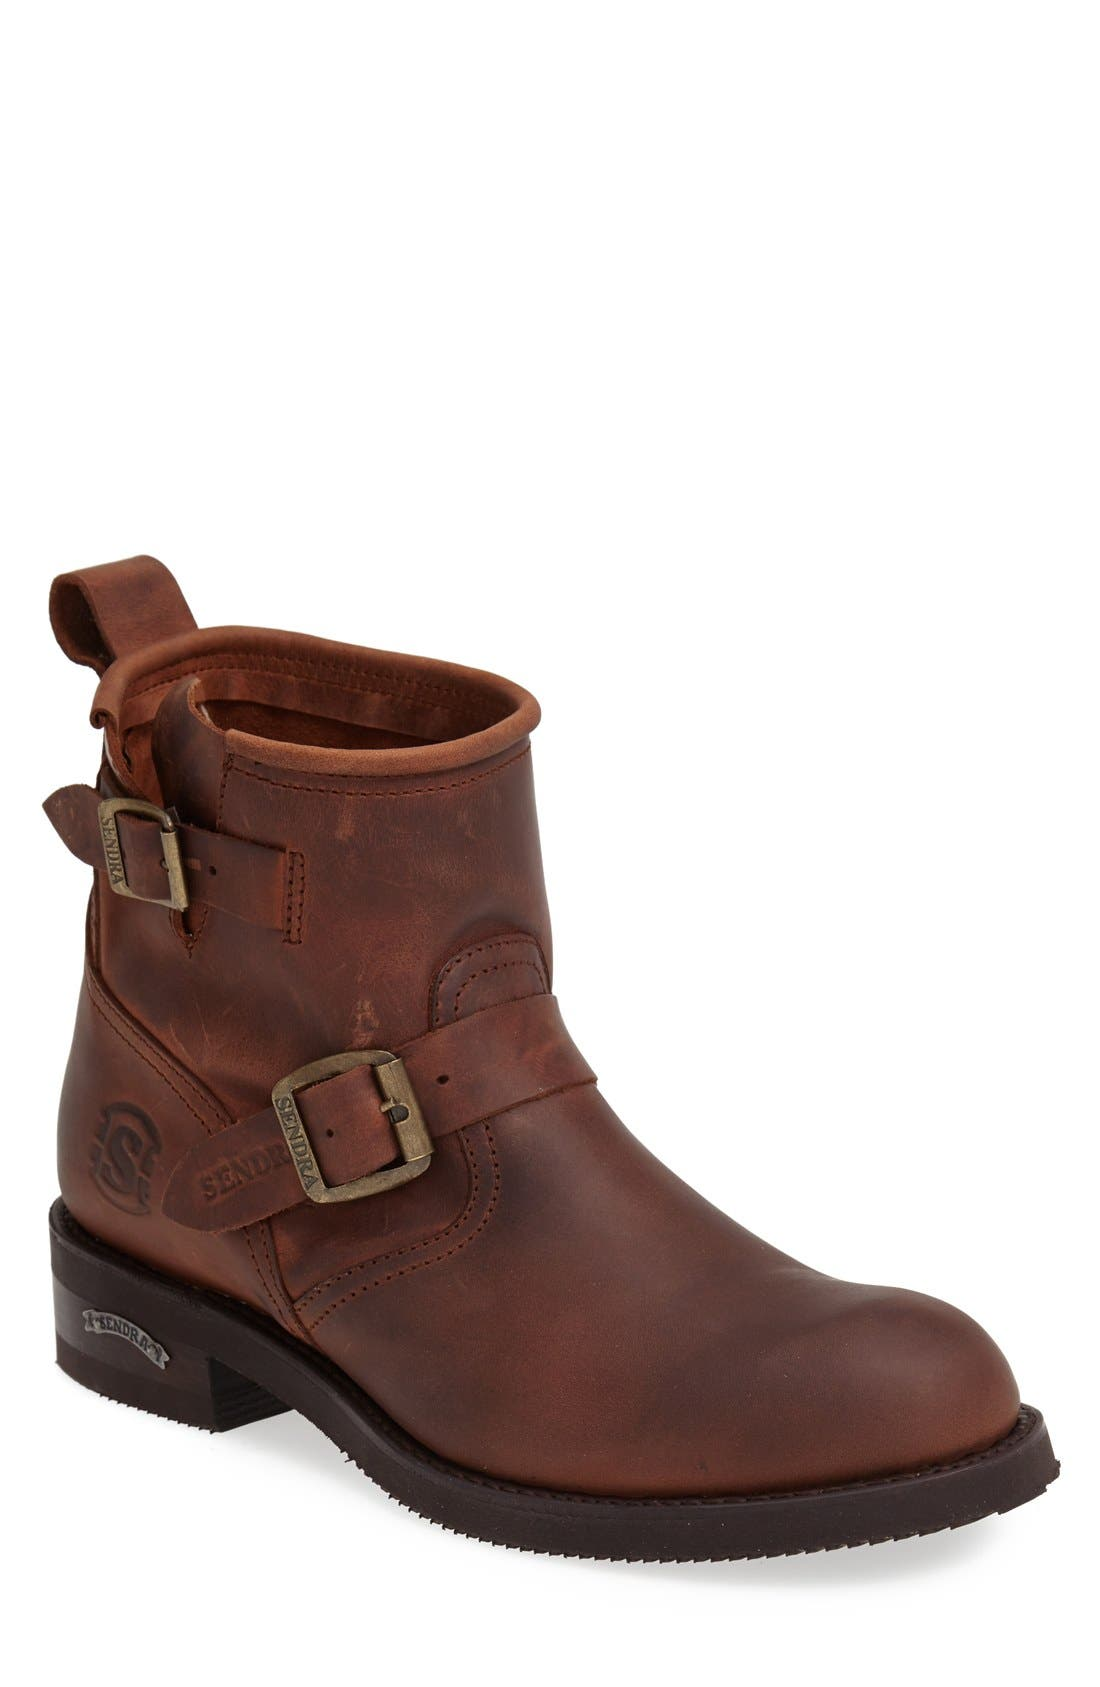 'Engineer' Harness Boot,                         Main,                         color, Brown